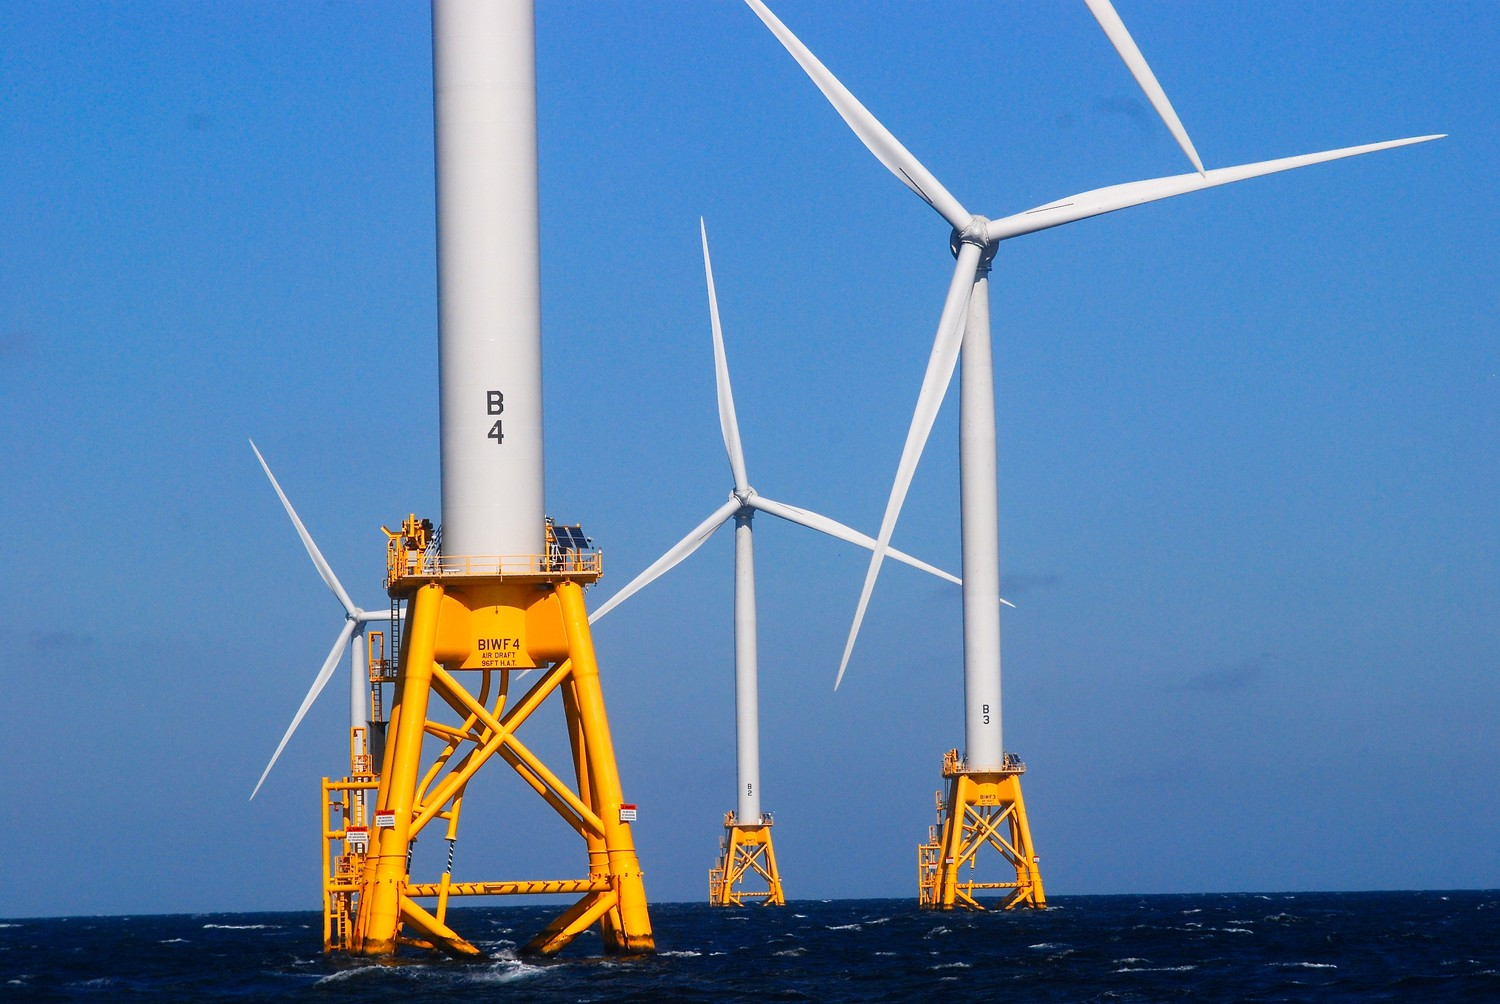 The wind farm now generates enough power for all of Block Island's 1,000 year-round and 10,000 summer residents.